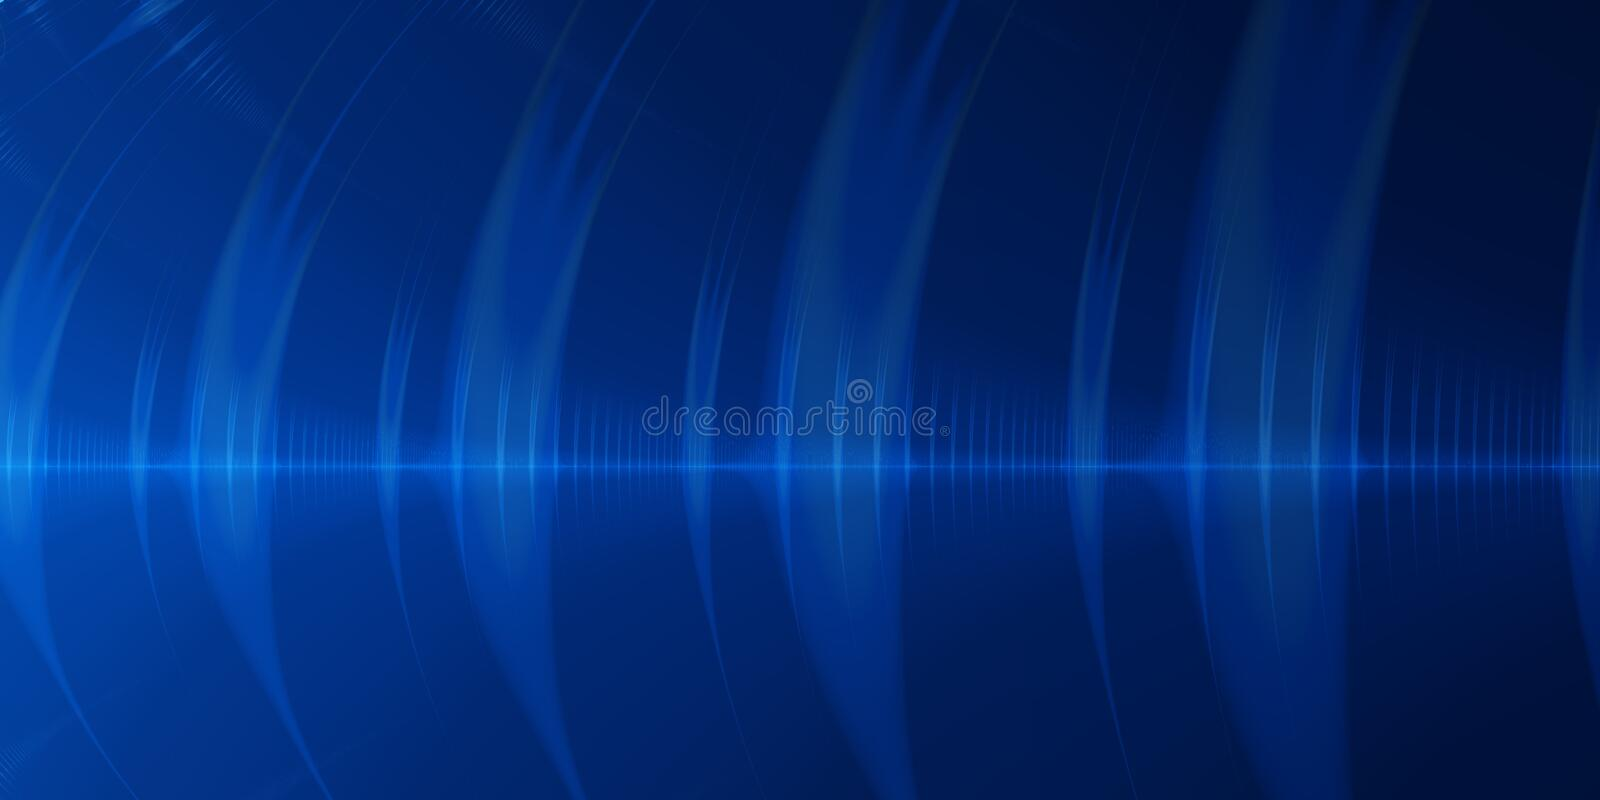 Blue wave abstract background stock illustration